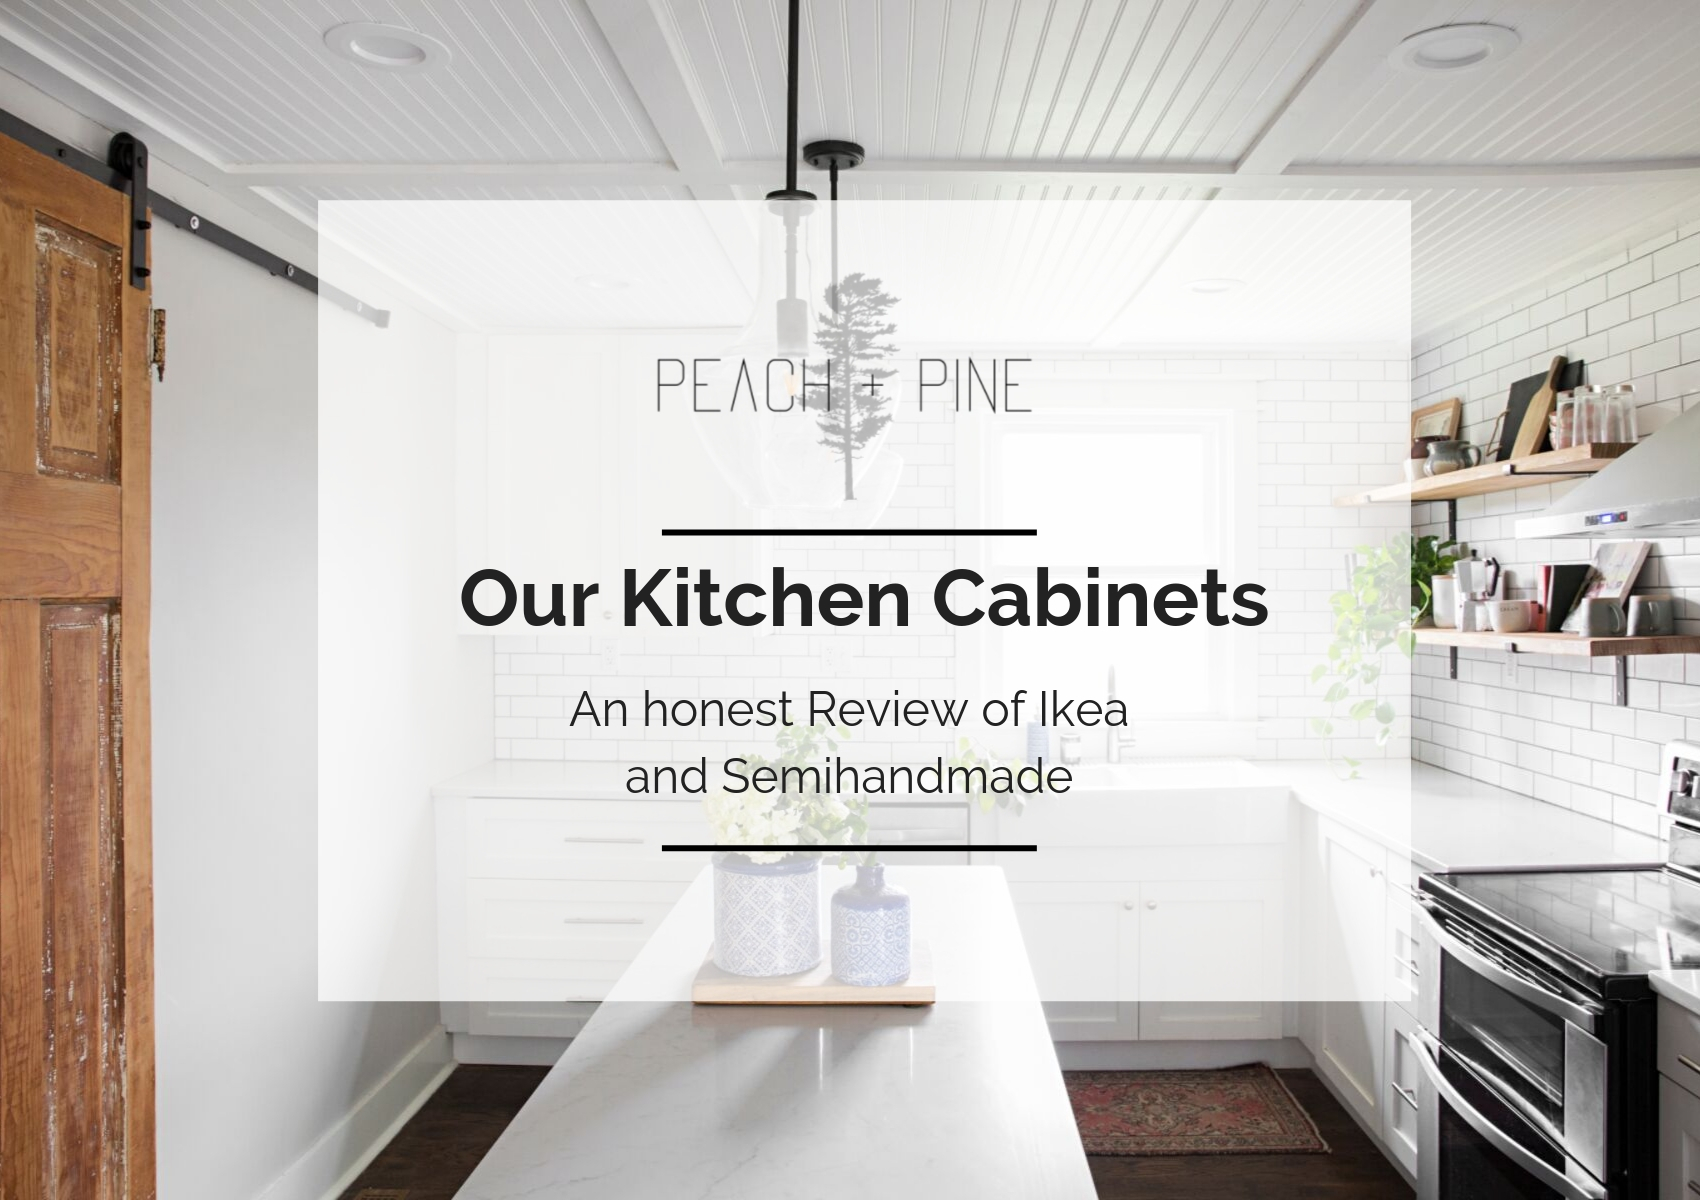 Peach Pine Home Our Kitchen Cabinets An Honest Review Of Ikea And Semihandmade